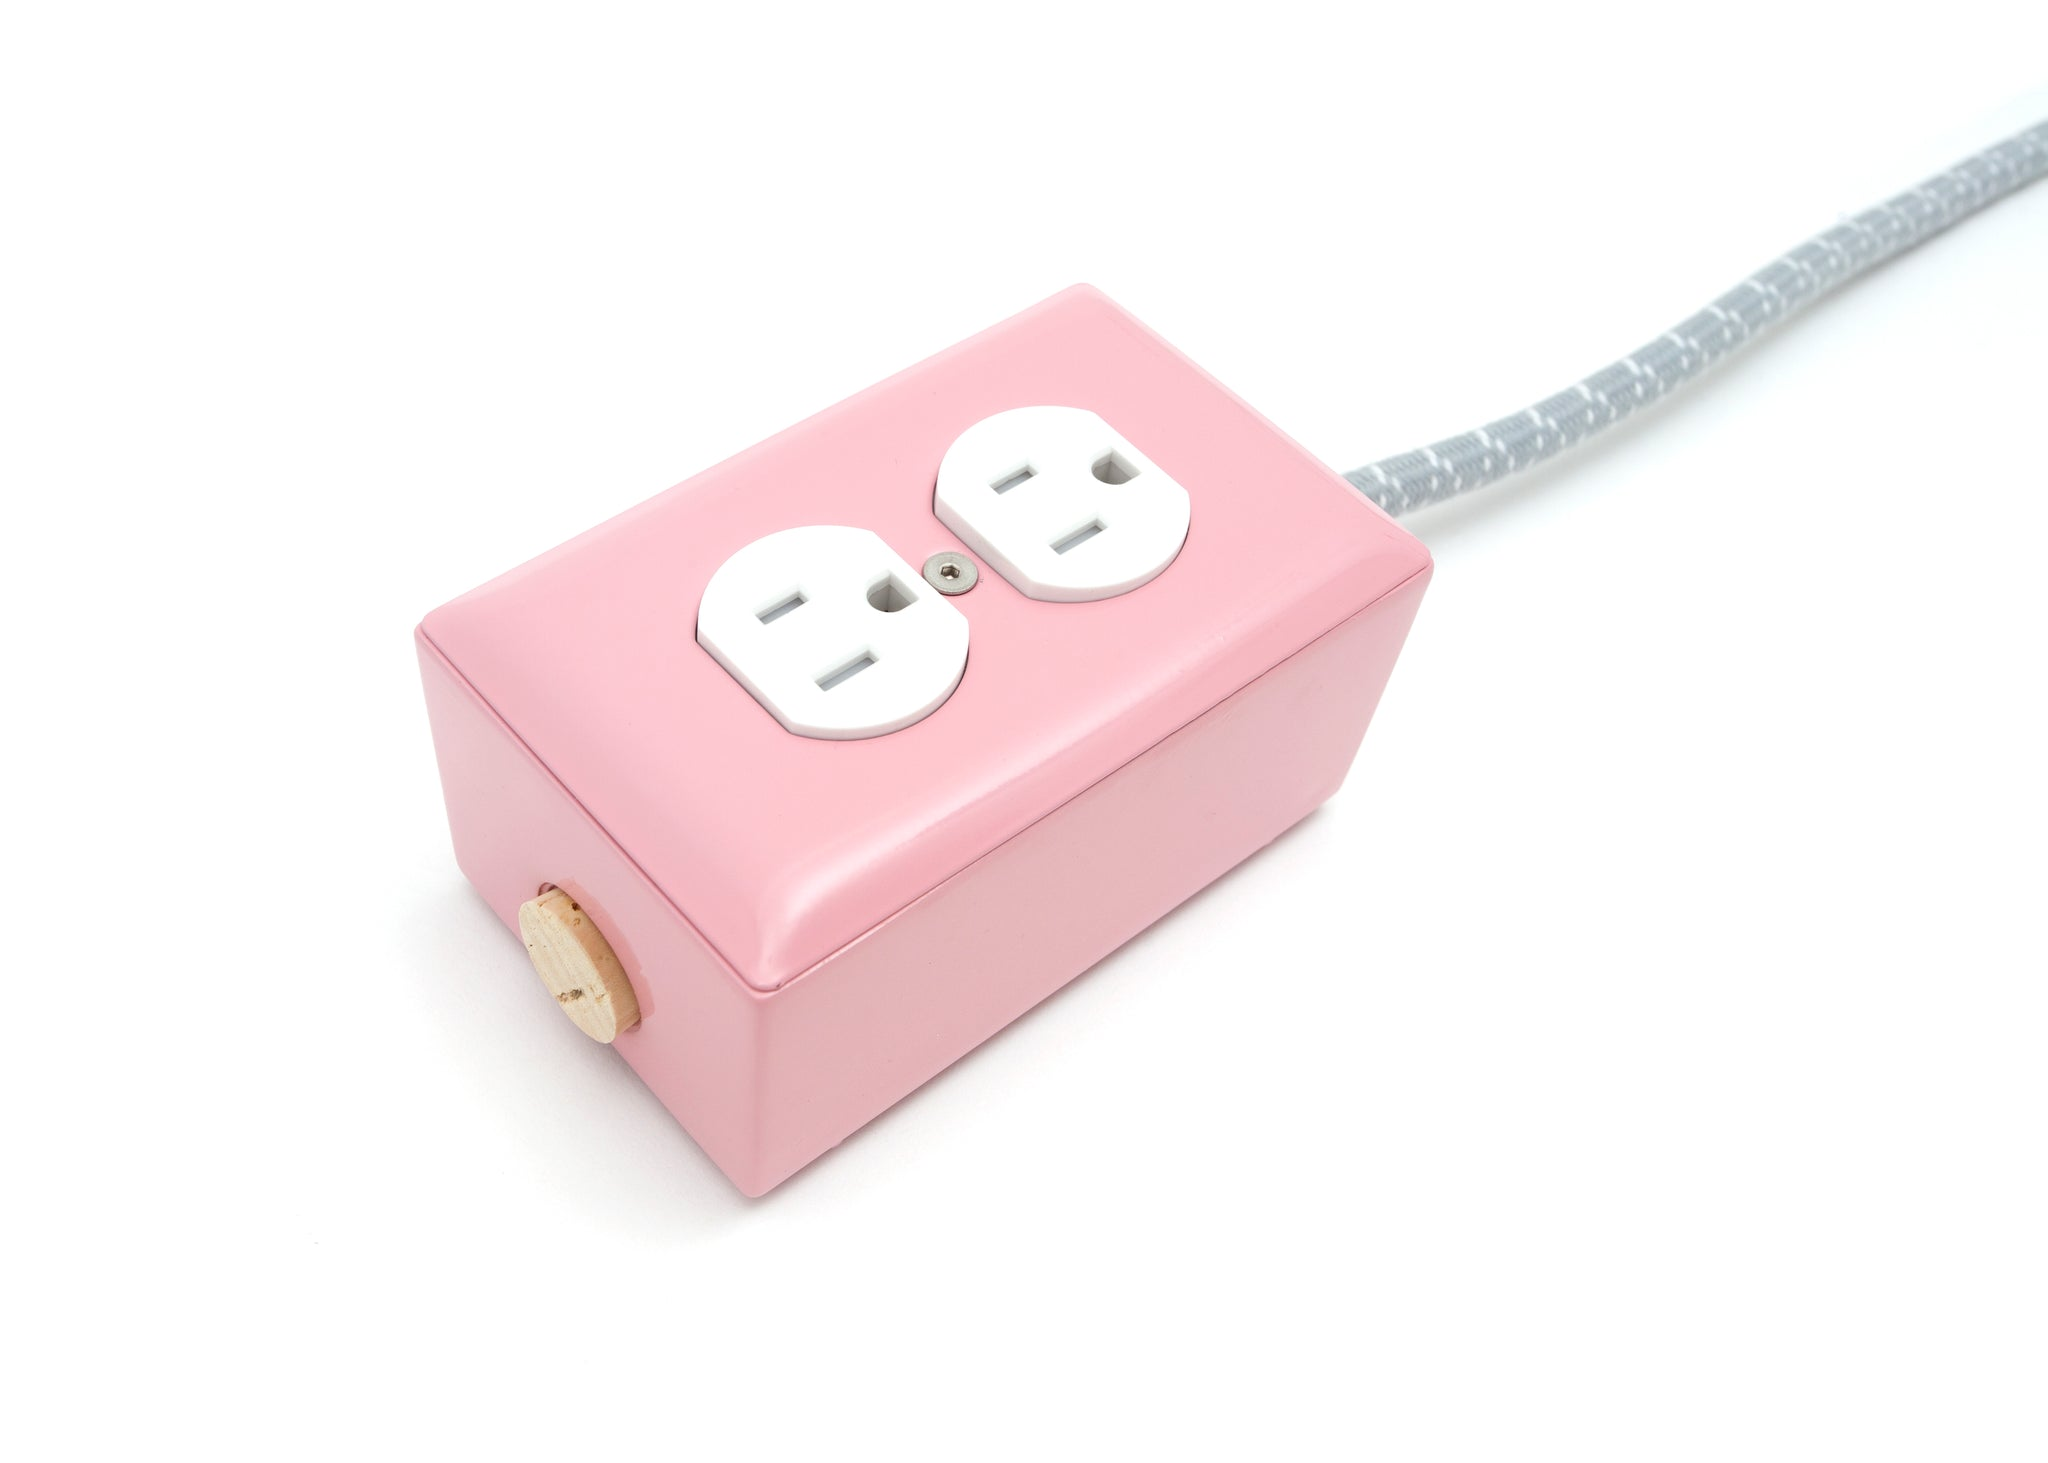 Extō Candy Pink Dual-Outlet Extension Cord for Nordstrom - A Modern Dual-Tamper-Resistant Outlet, 13-AMP Extension Cord